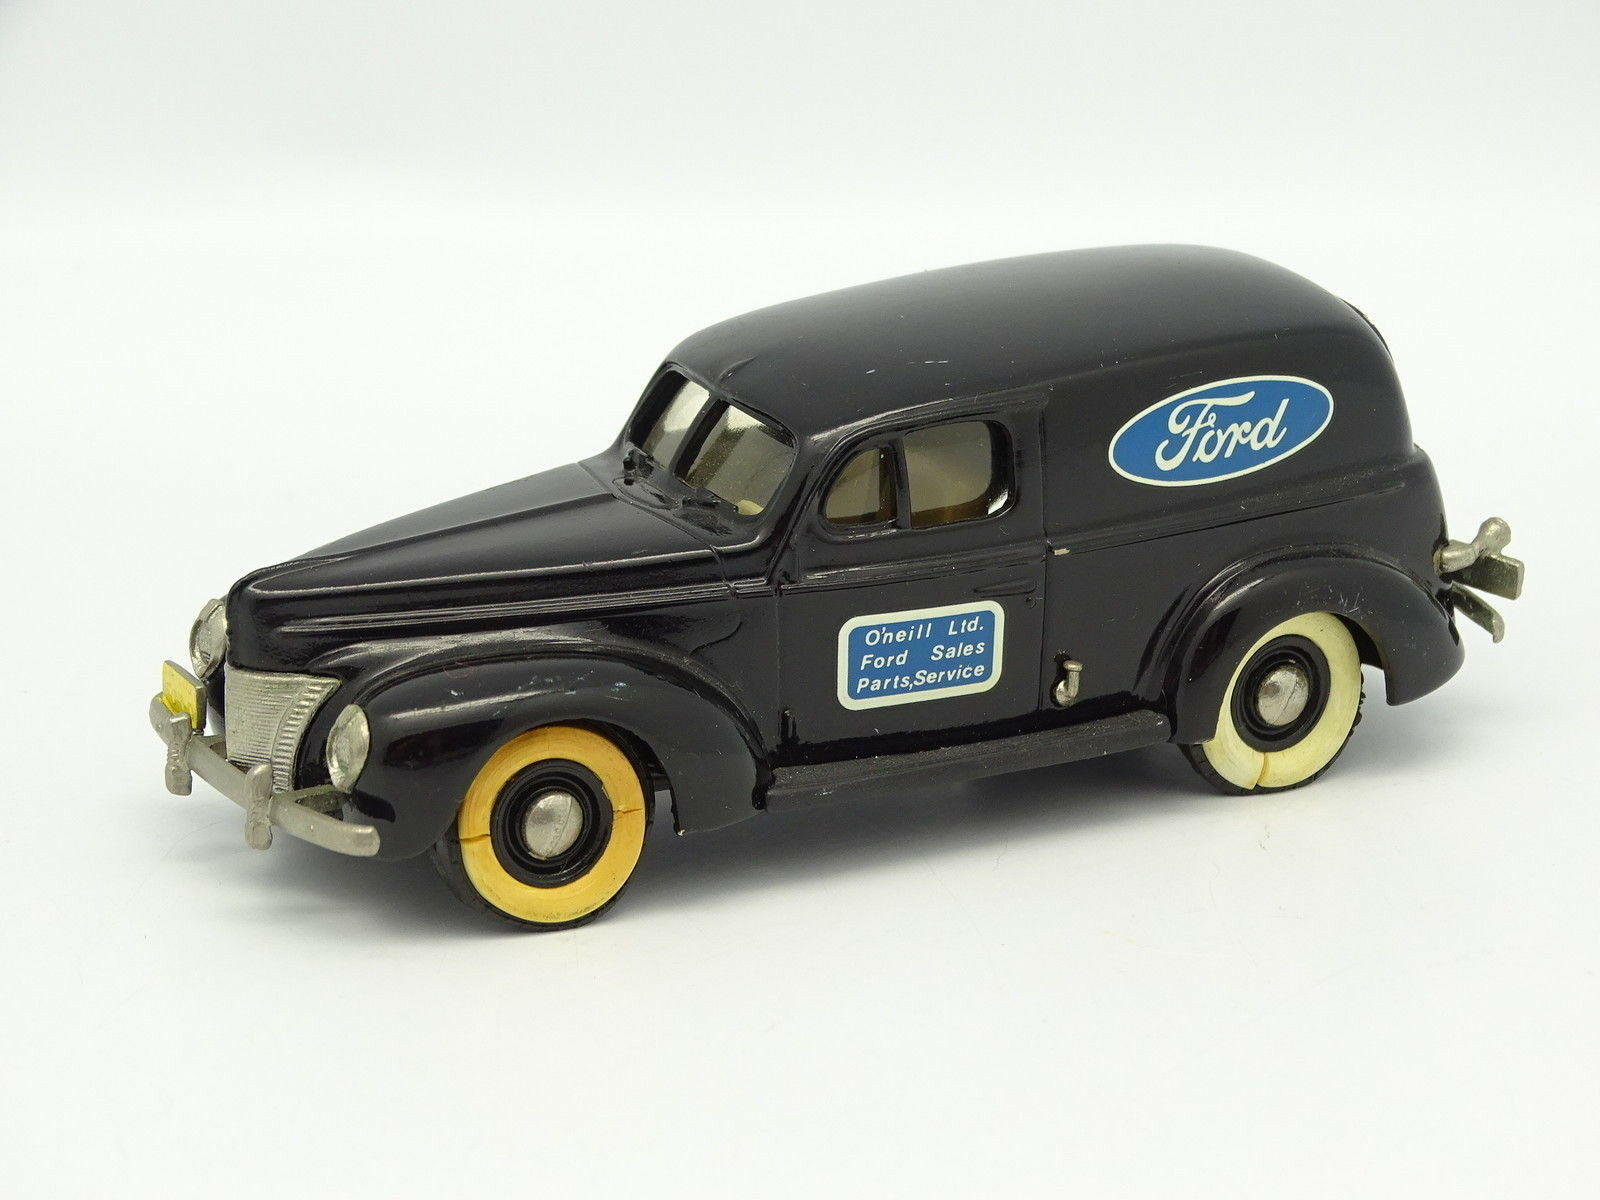 Brooklin 1 43 - Ford Sedan Delivery Van O'neill Ford Service